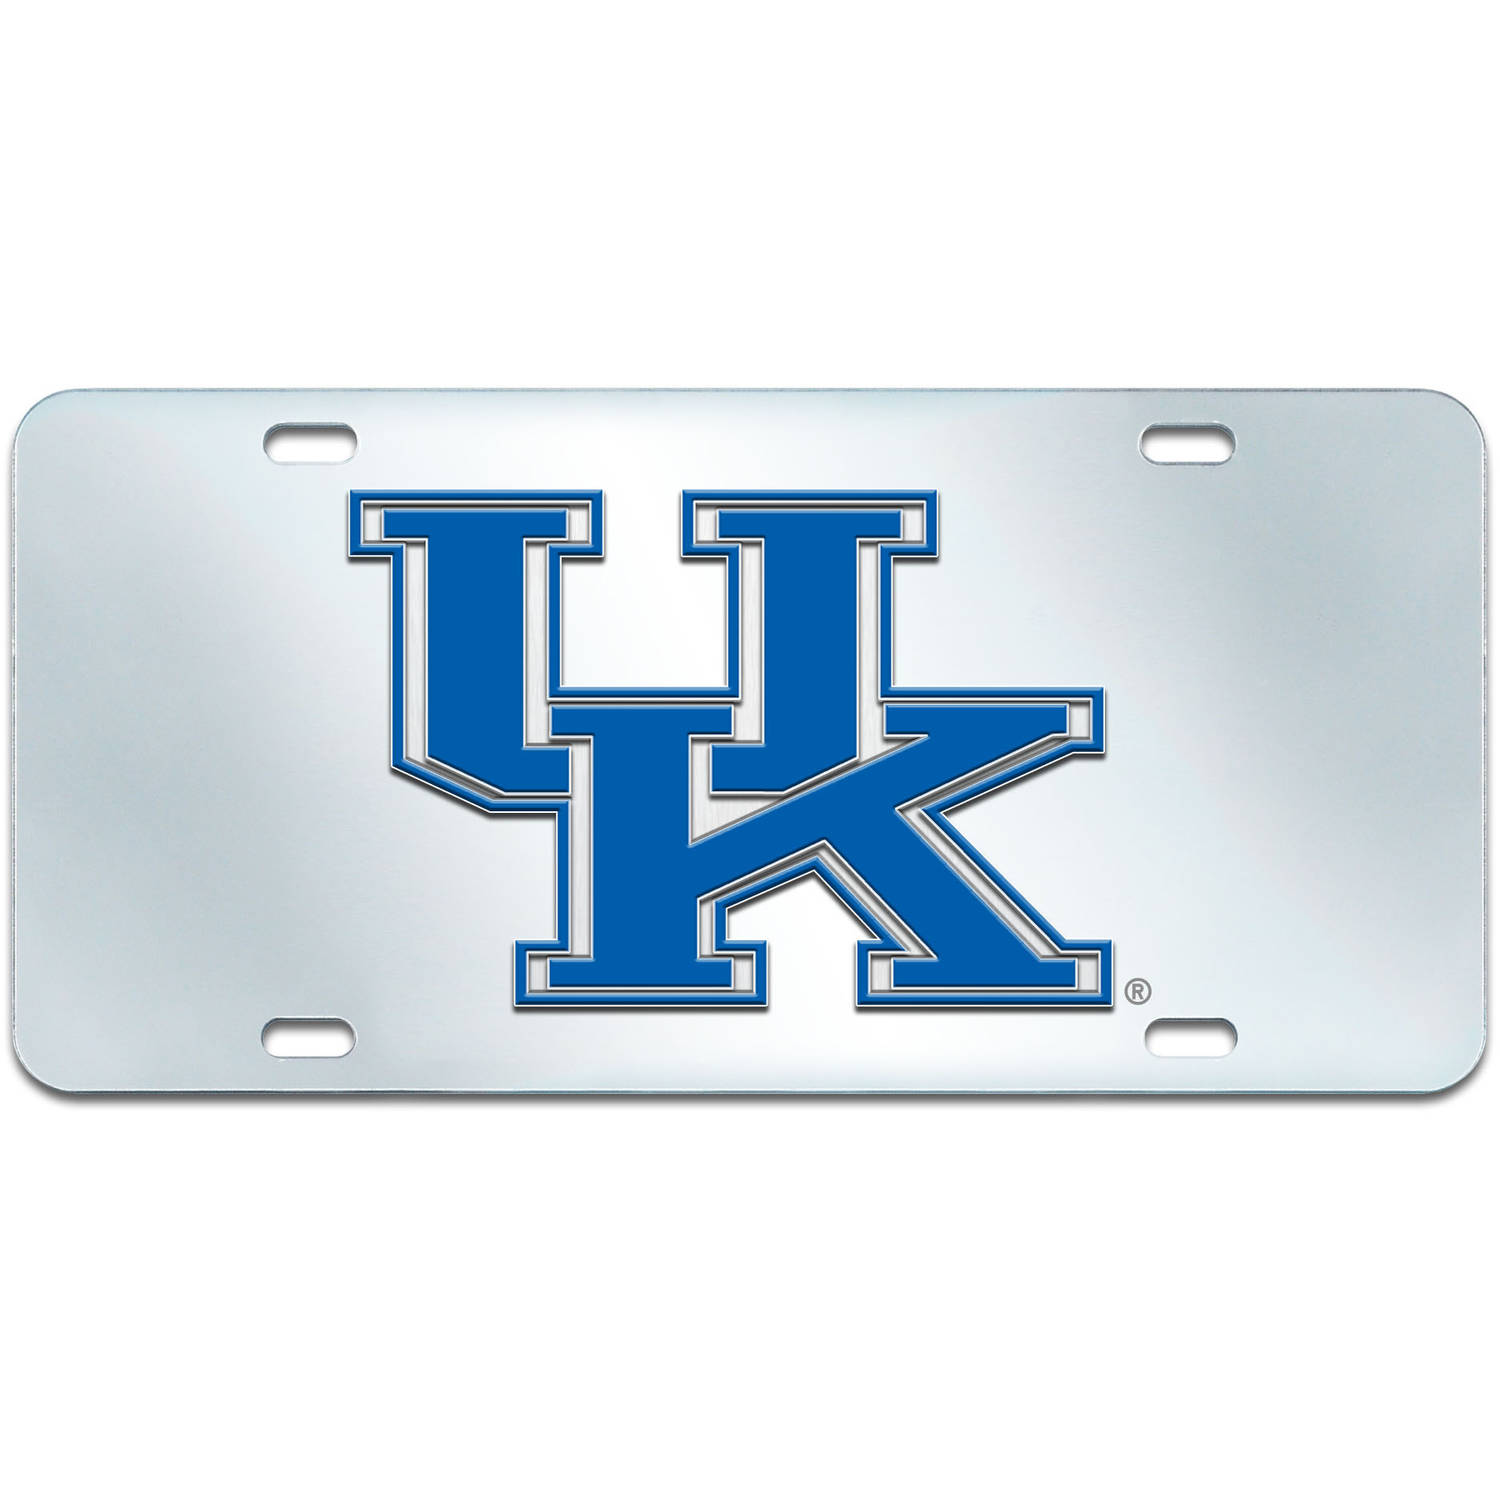 FANMATS NCAA University of Kentucky Wildcats Chrome License Plate Frame